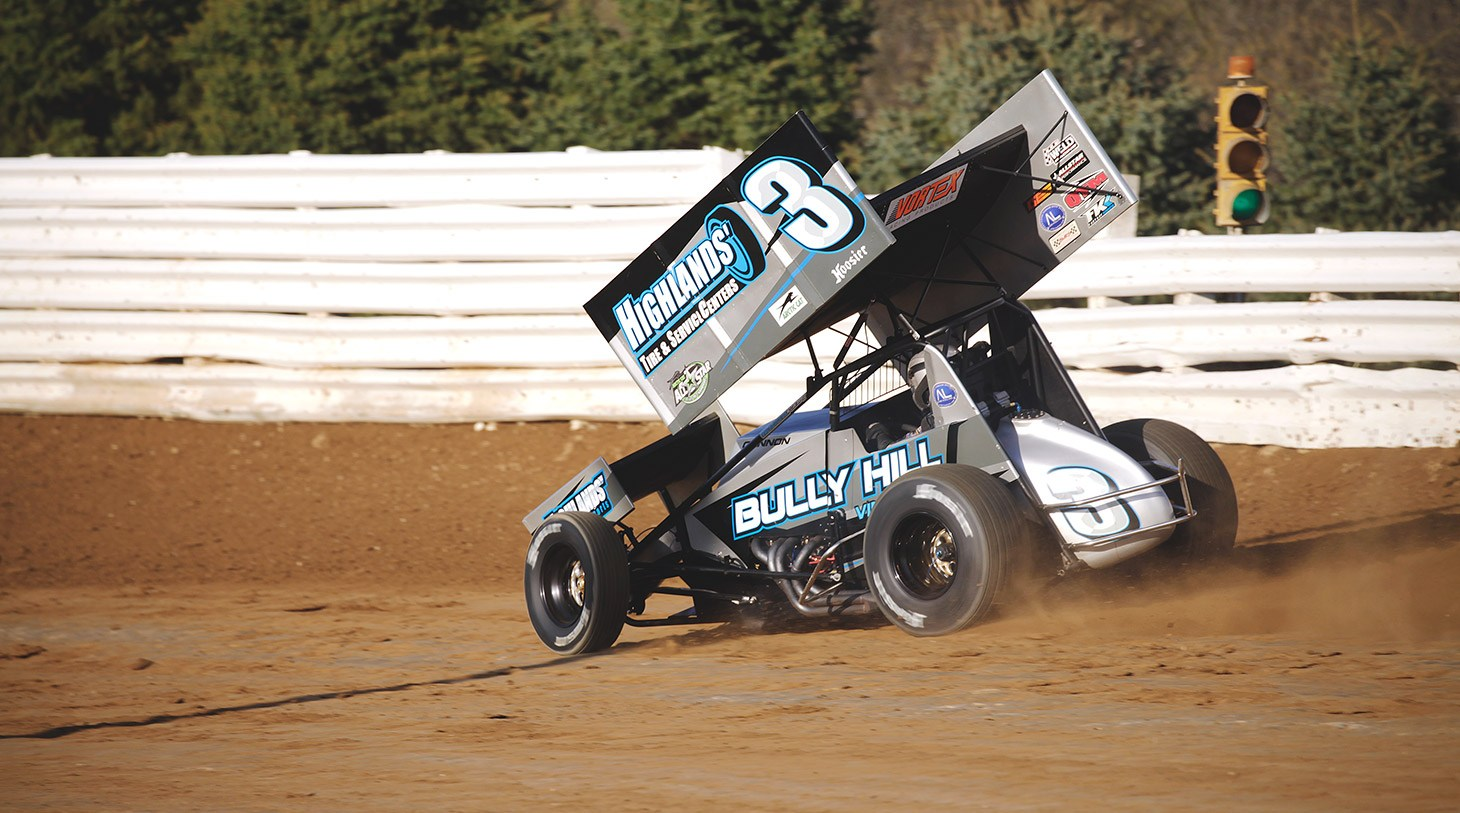 Pat Cannon qualifying at the ASCoC race in Selinsgrove, Pa 2016